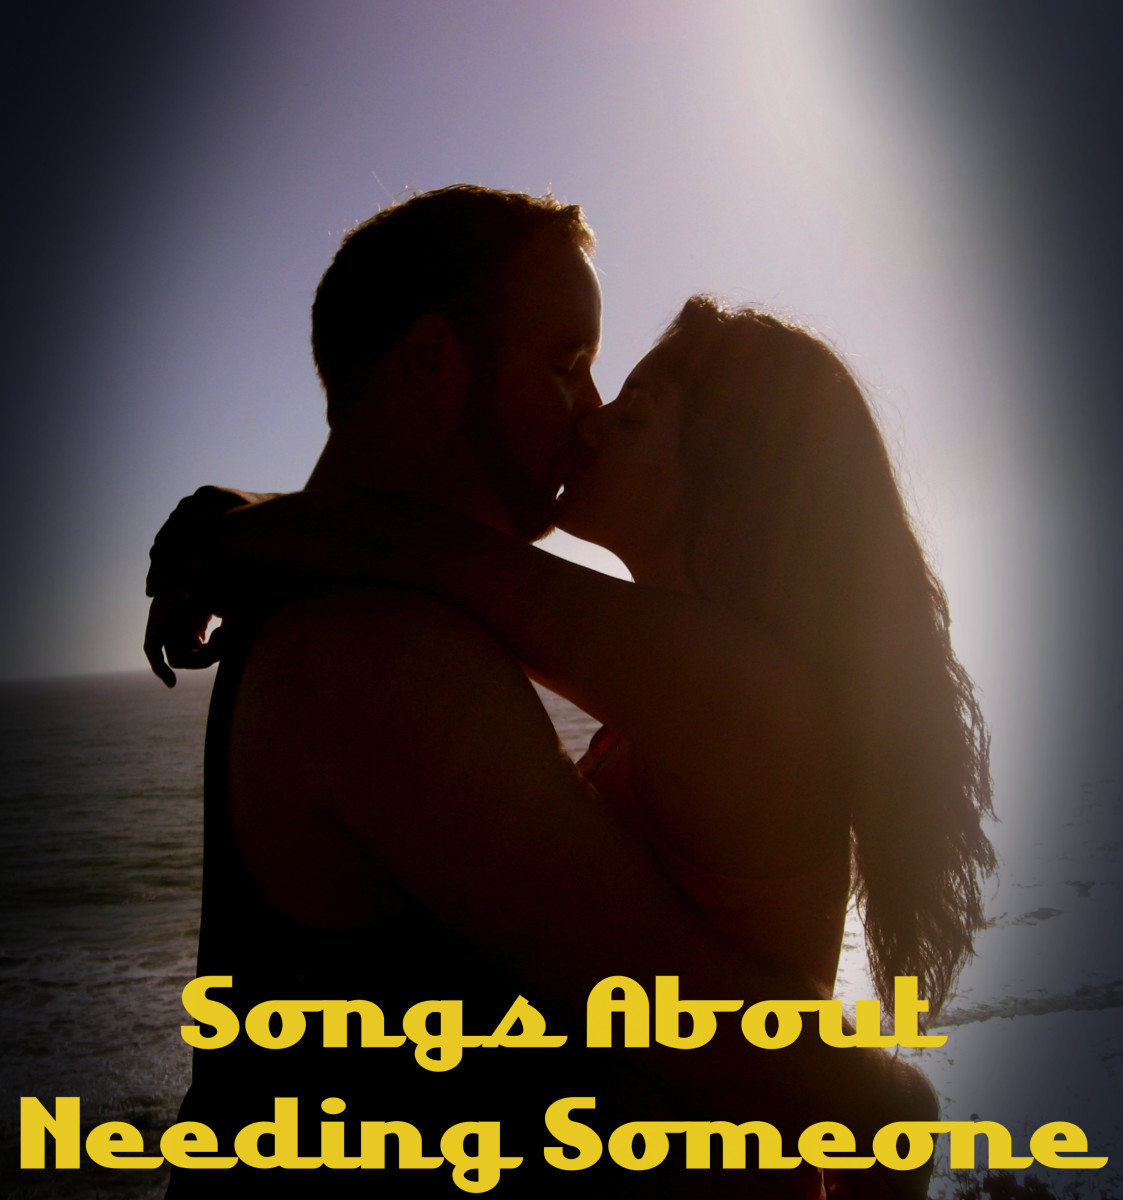 62 Songs About Needing Someone